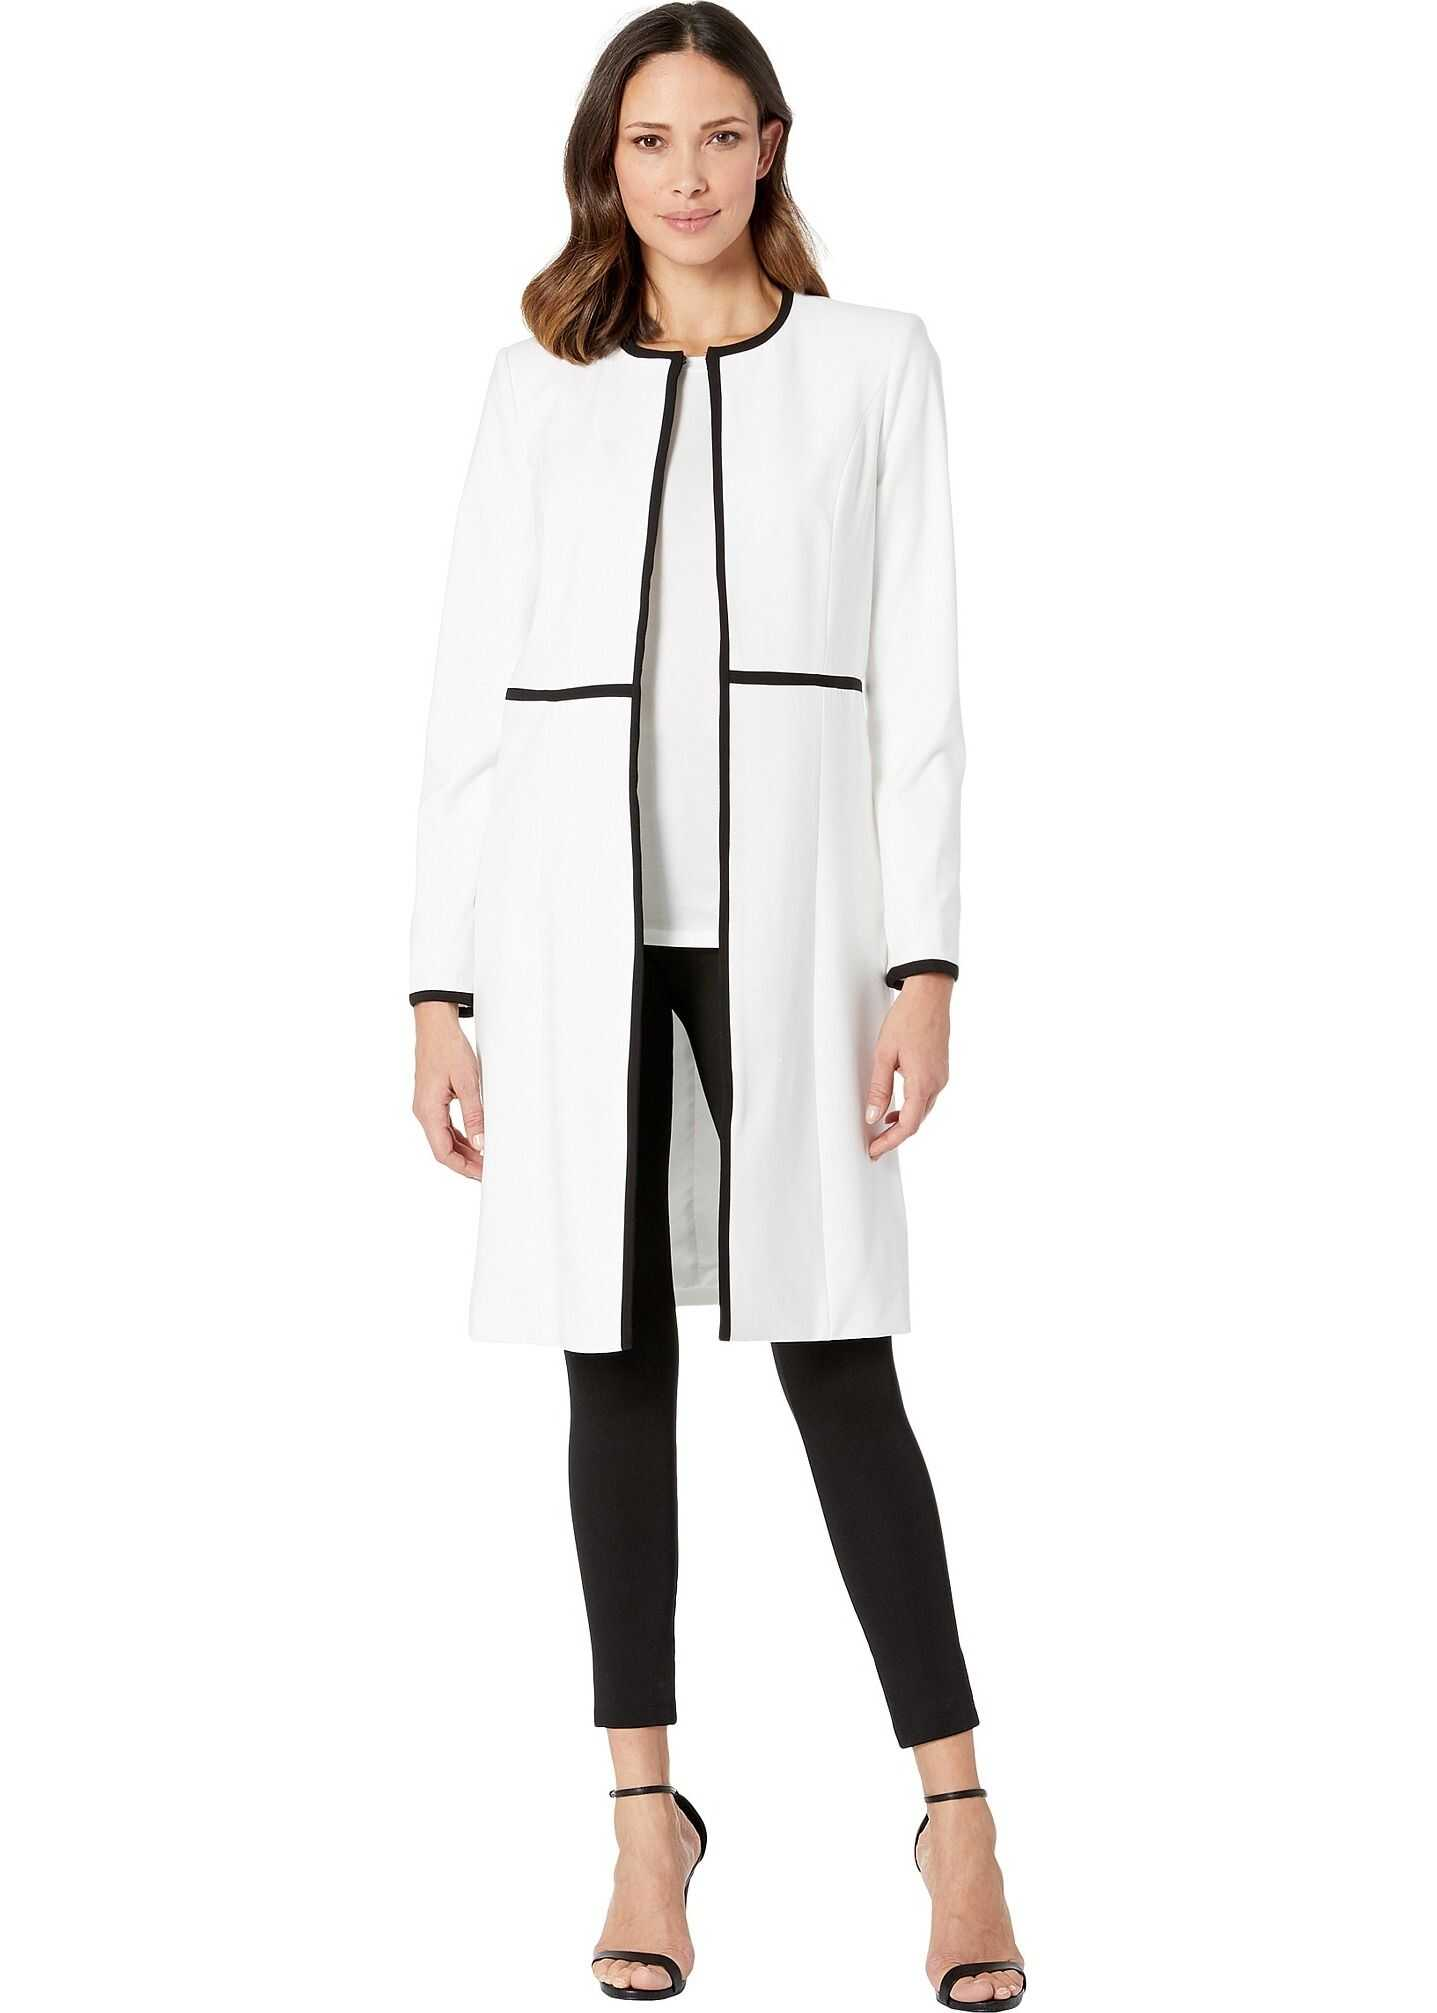 Calvin Klein Lux Long Piped Topper White/Black